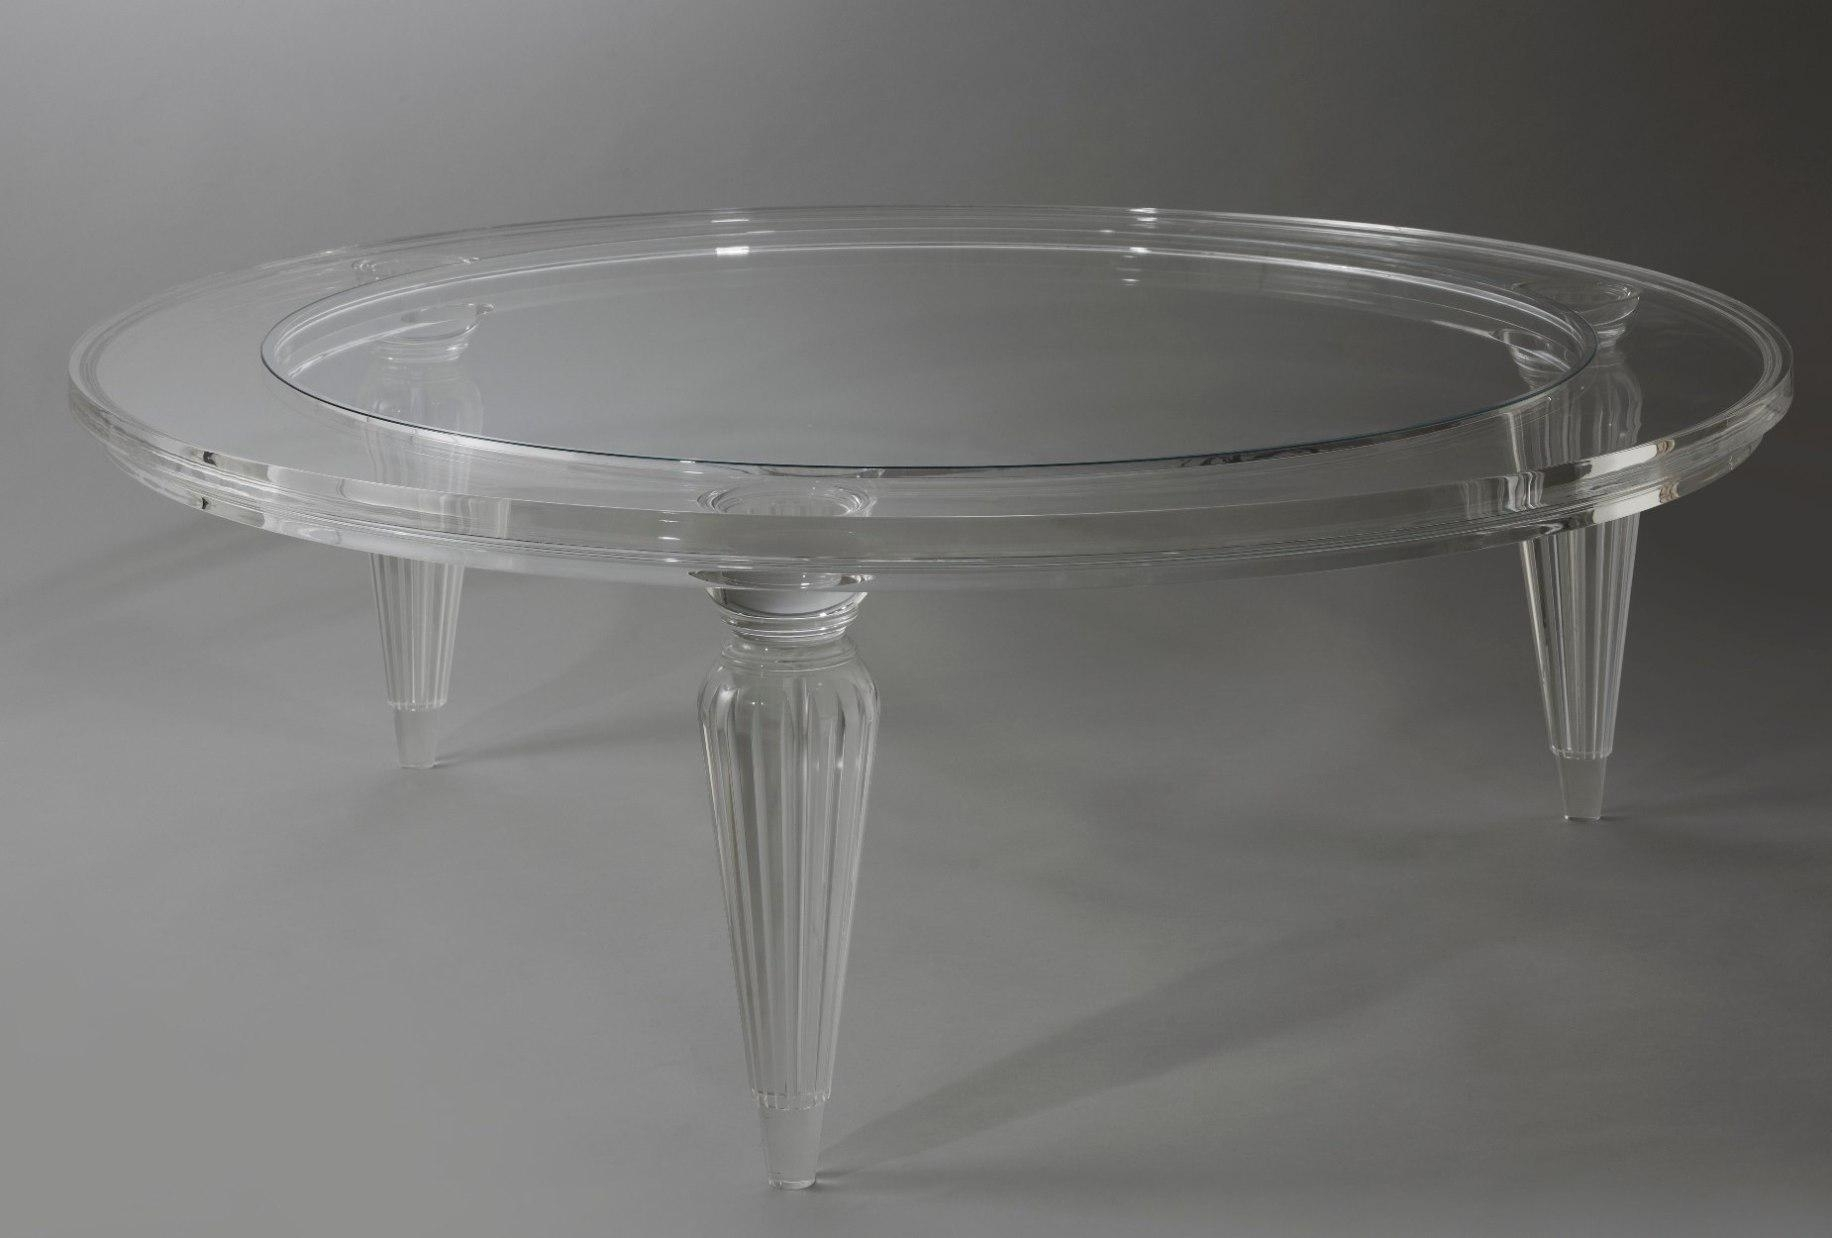 Tips Round Acrylic Coffee Table - Acrylic Coffee Table Cleaning And with Peekaboo Acrylic Coffee Tables (Image 29 of 30)